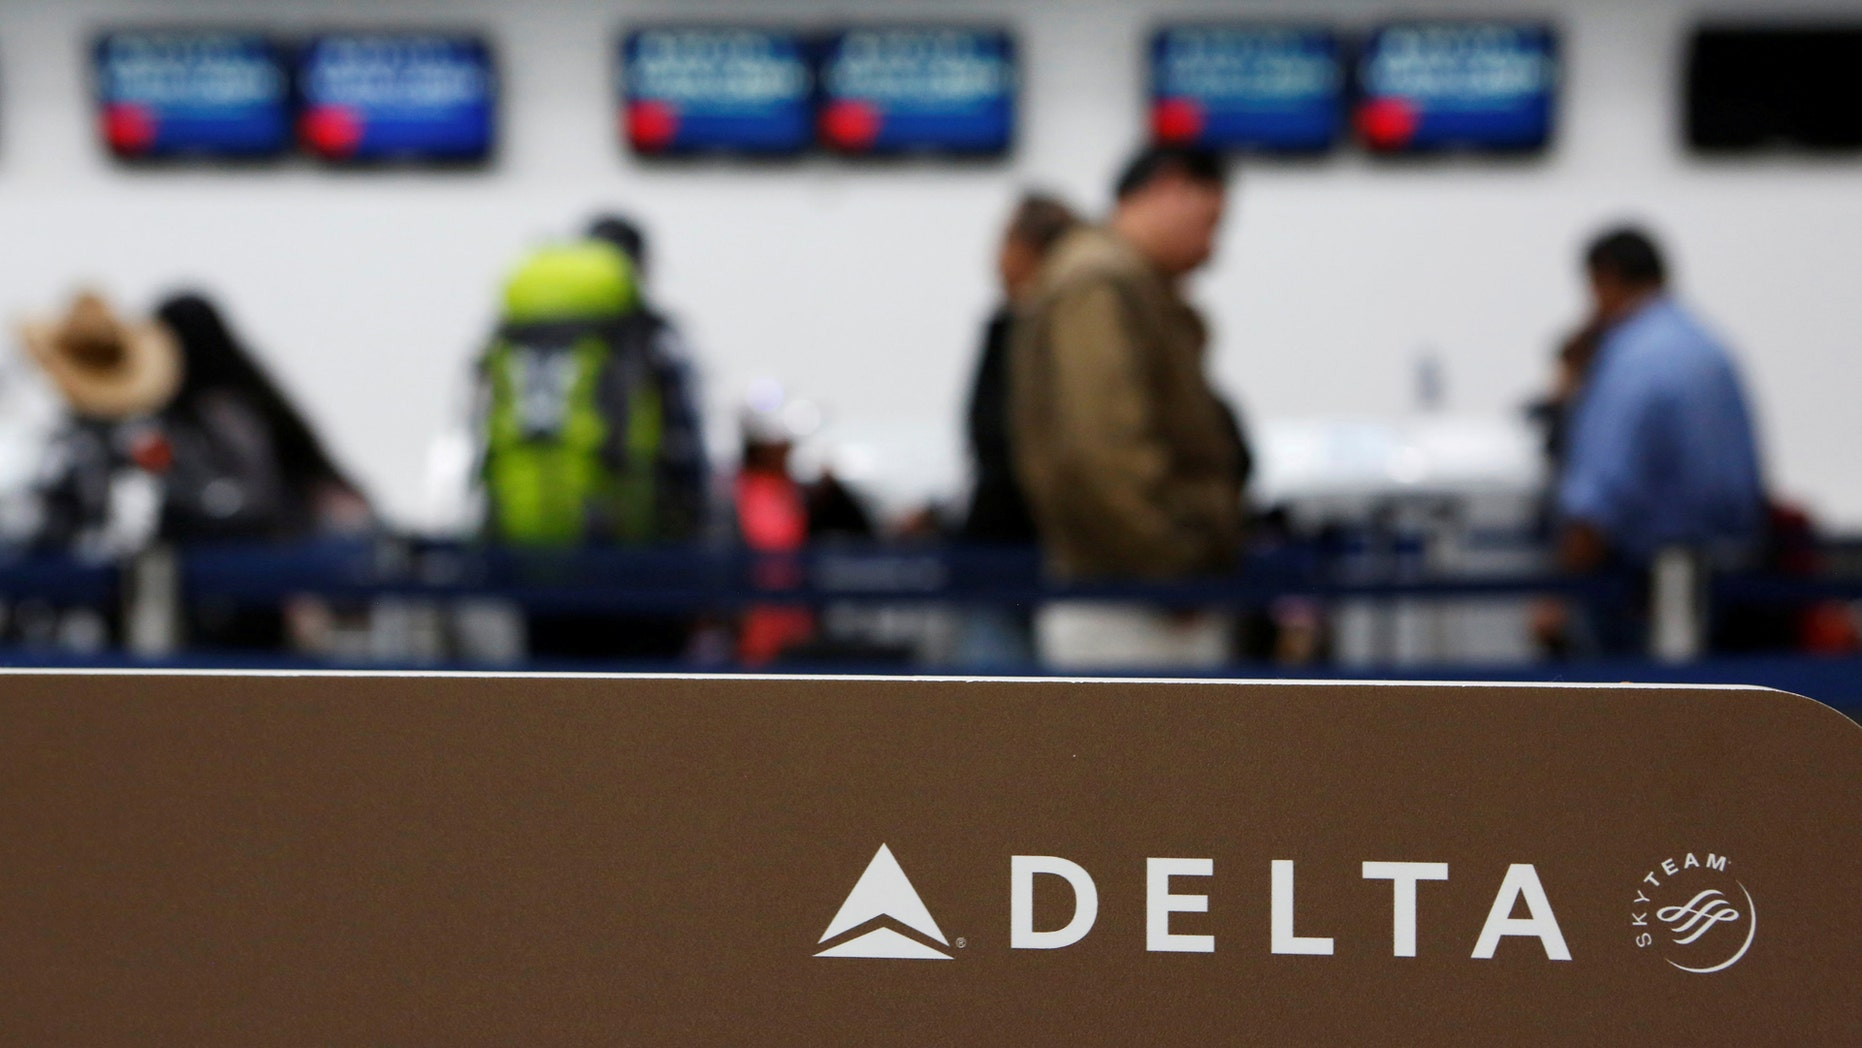 File photo: Passengers check in at a counter of Delta Air Lines in Mexico City, Mexico, August 8, 2016. (REUTERS/Ginnette Riquelme)